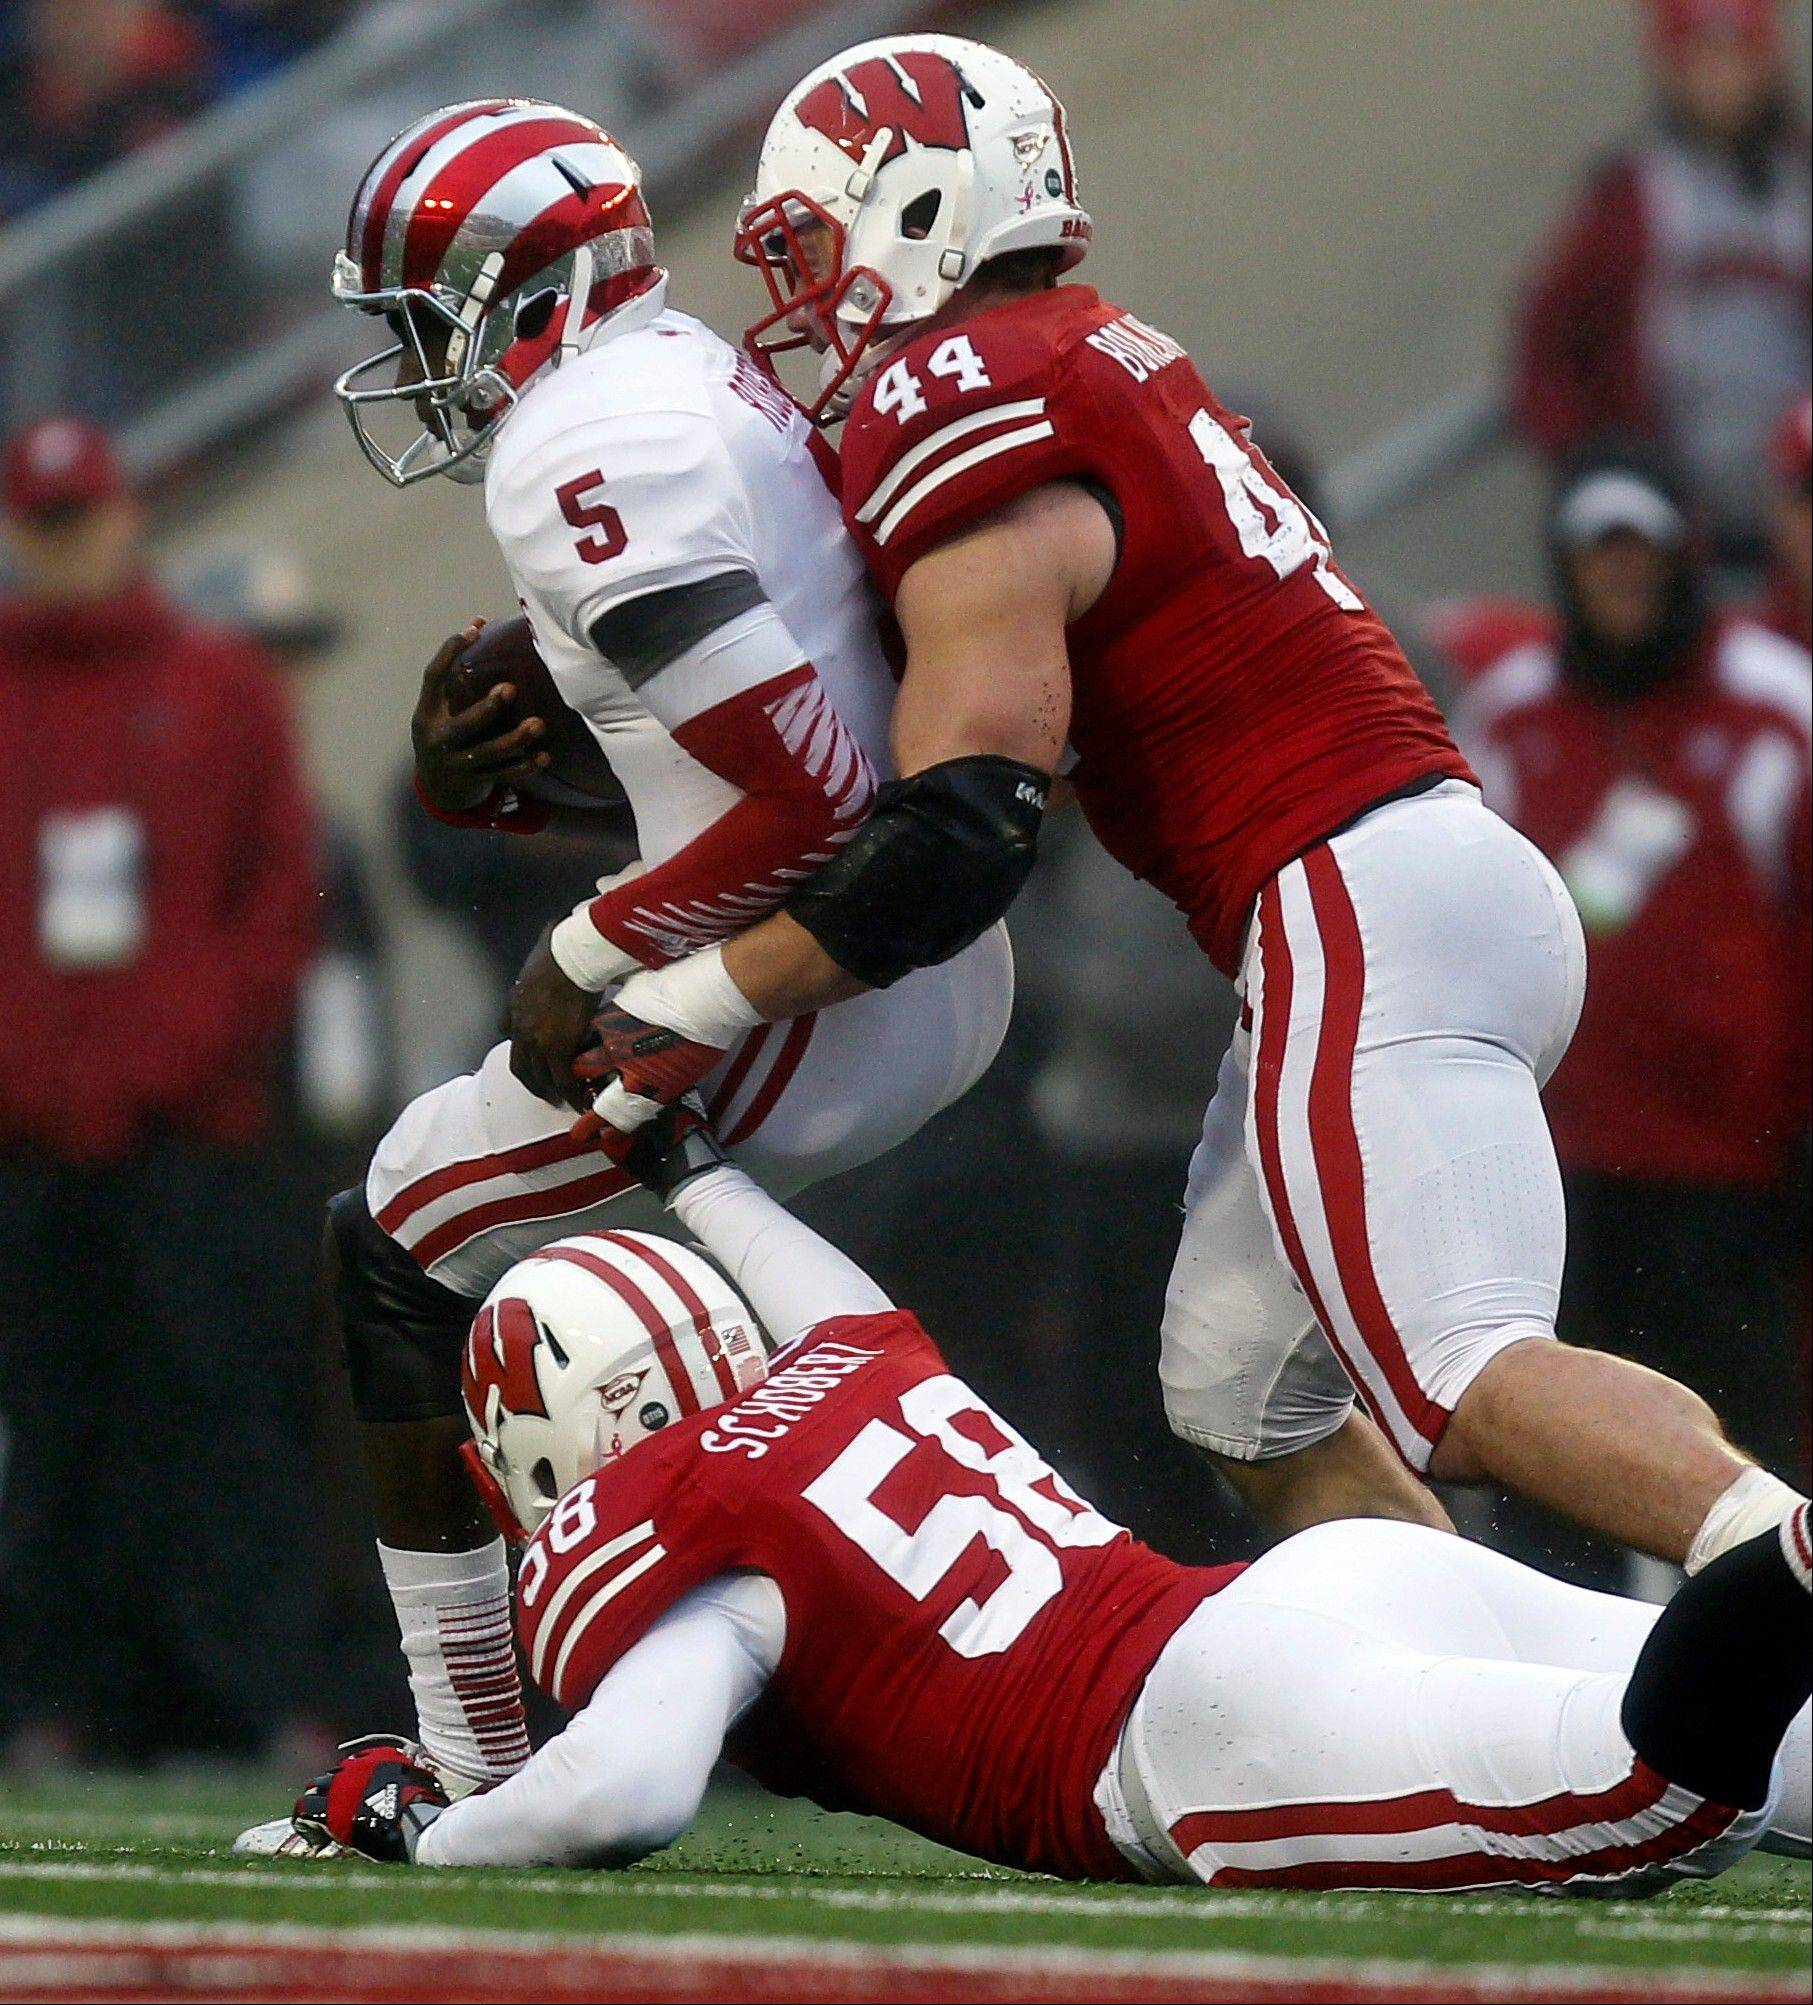 Indiana quarterback Tre Roberson is sacked by Wisconsin�s Chris Borland (44) and Joe Schobert during the first half of Saturday�s game in Madison, Wis. The Badgers routed the Hoosiers 51-3.